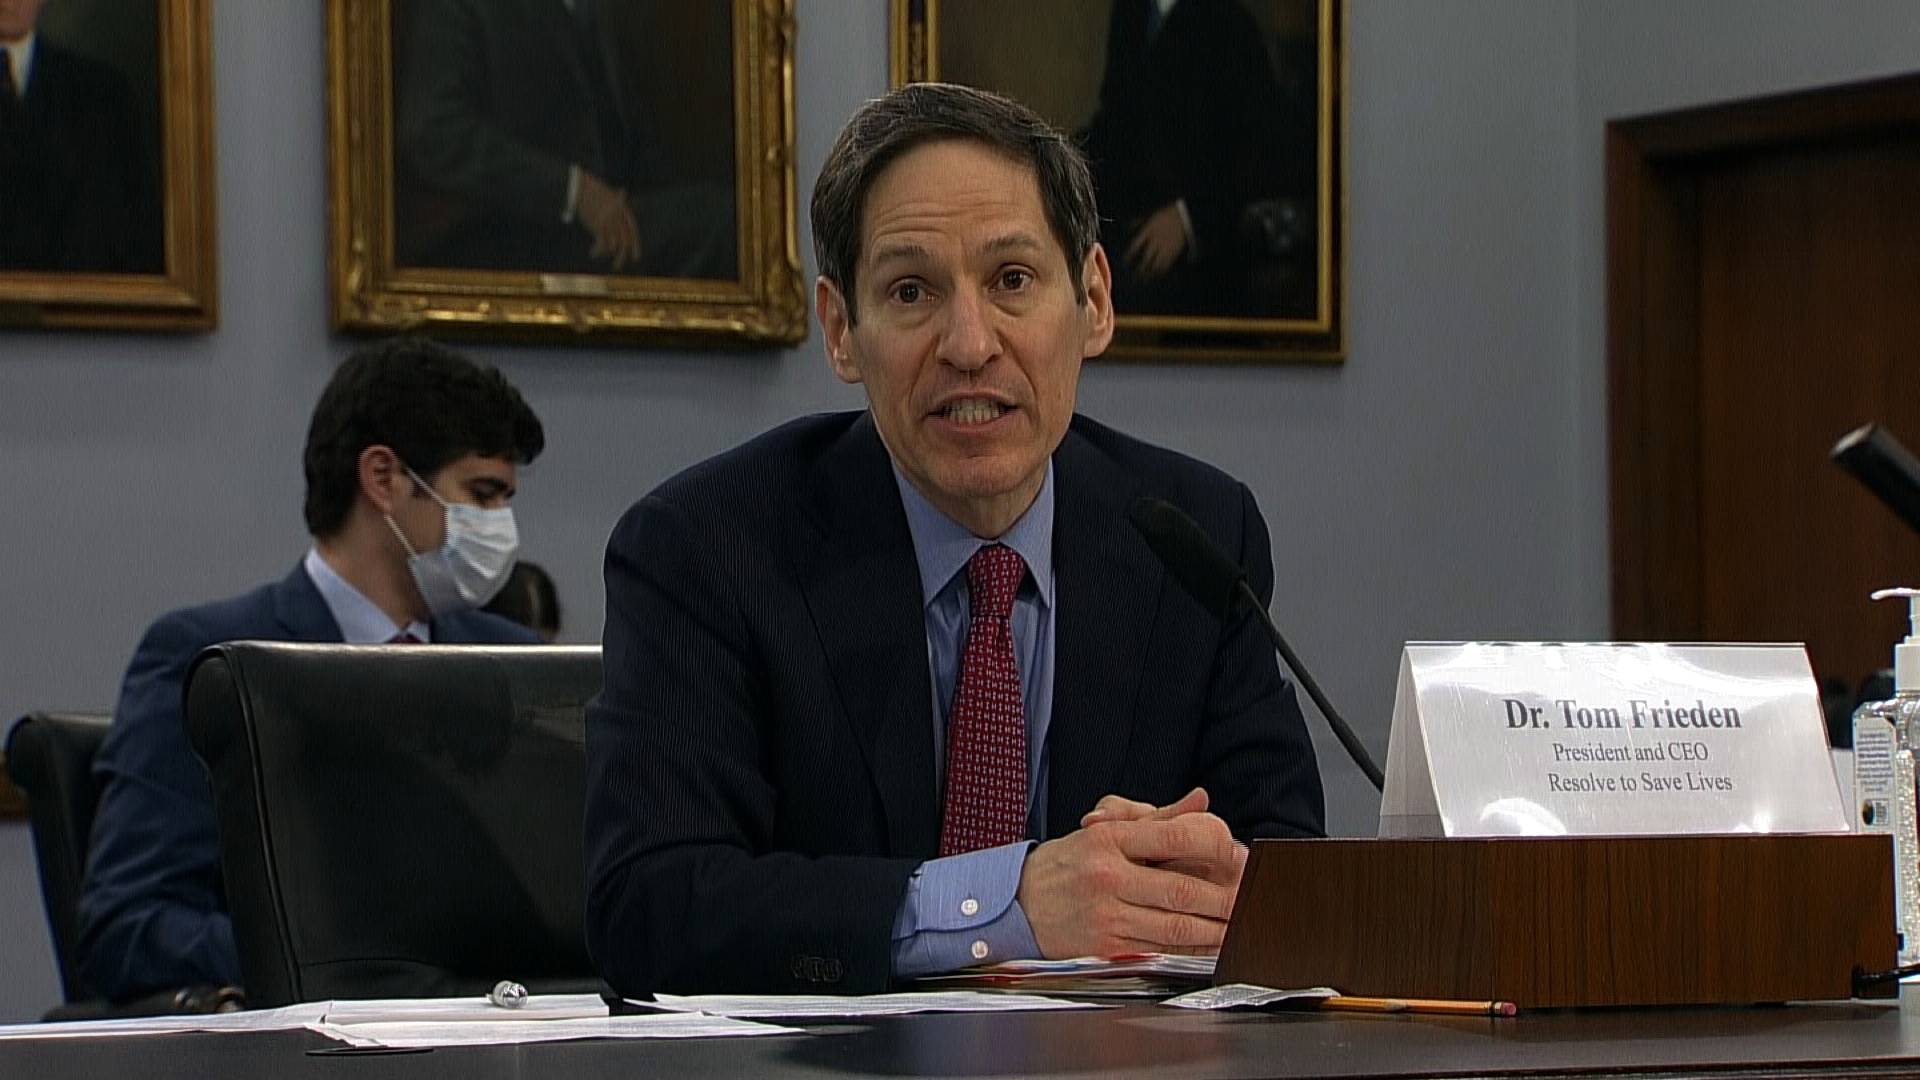 Dr. Tom Frieden, the former director of the US Centers for Disease Control and Prevention, speaks at a hearing on the country's response to Covid-19 on May 6.